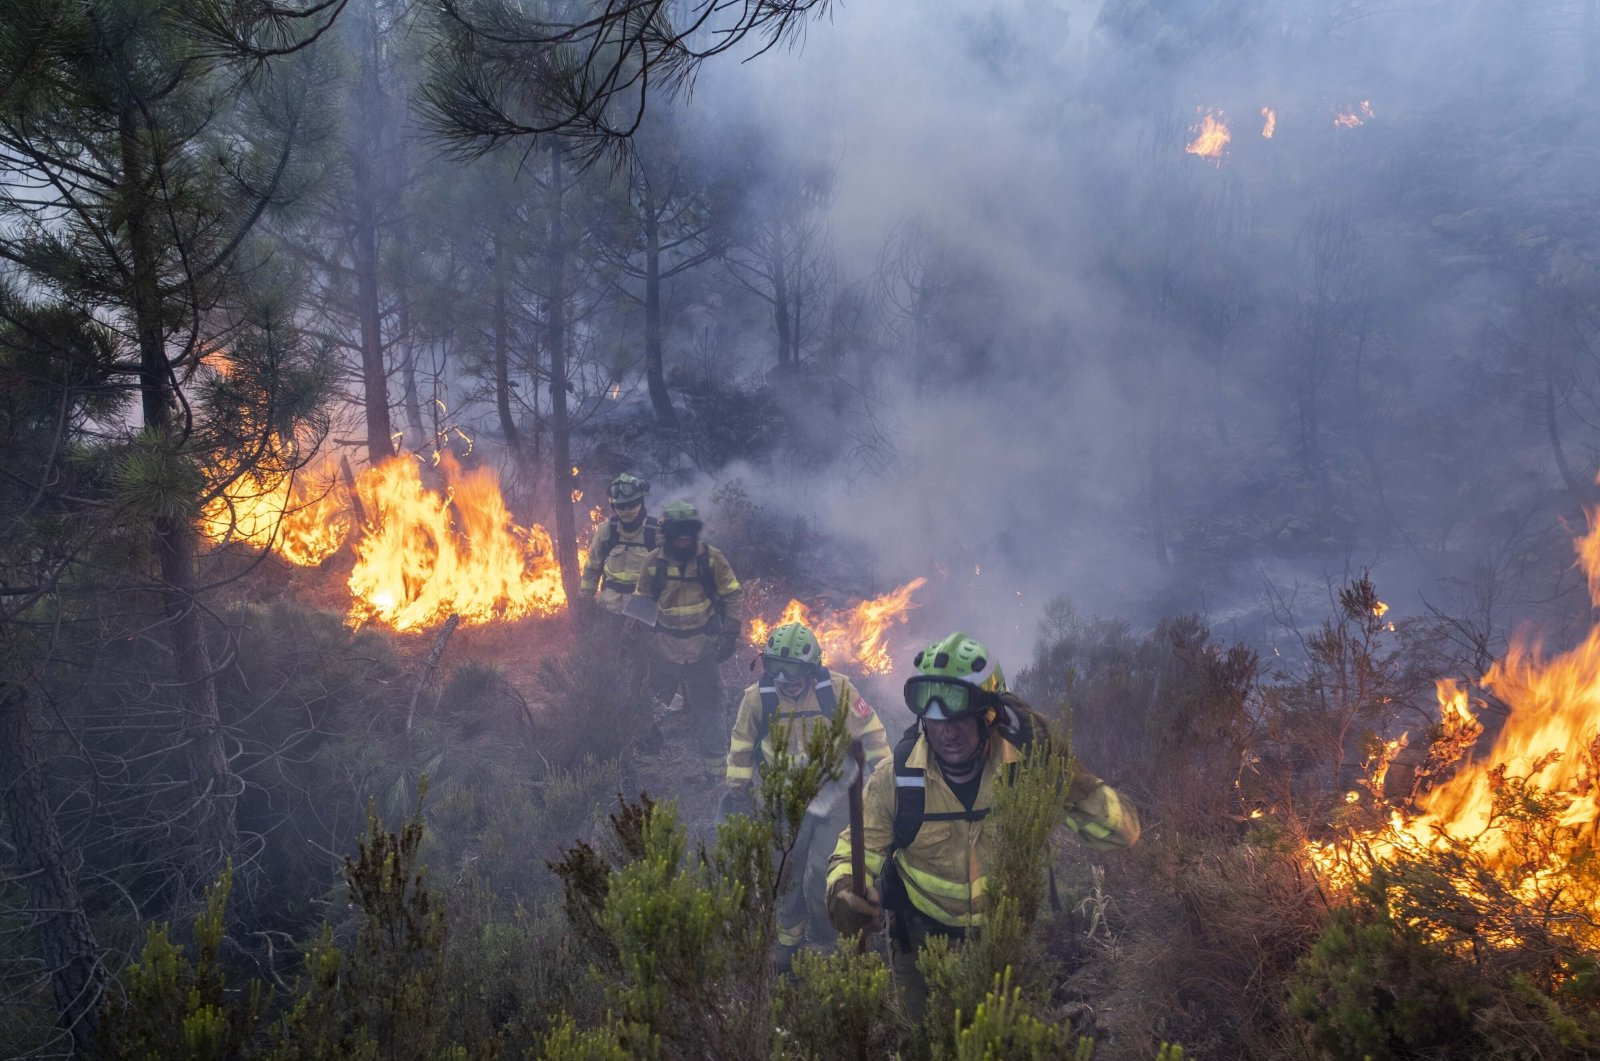 Forest firefighters work on a wildfire near the town of Jubrique, in Malaga province, Spain, Sept. 11, 2021.  (AP Photo)